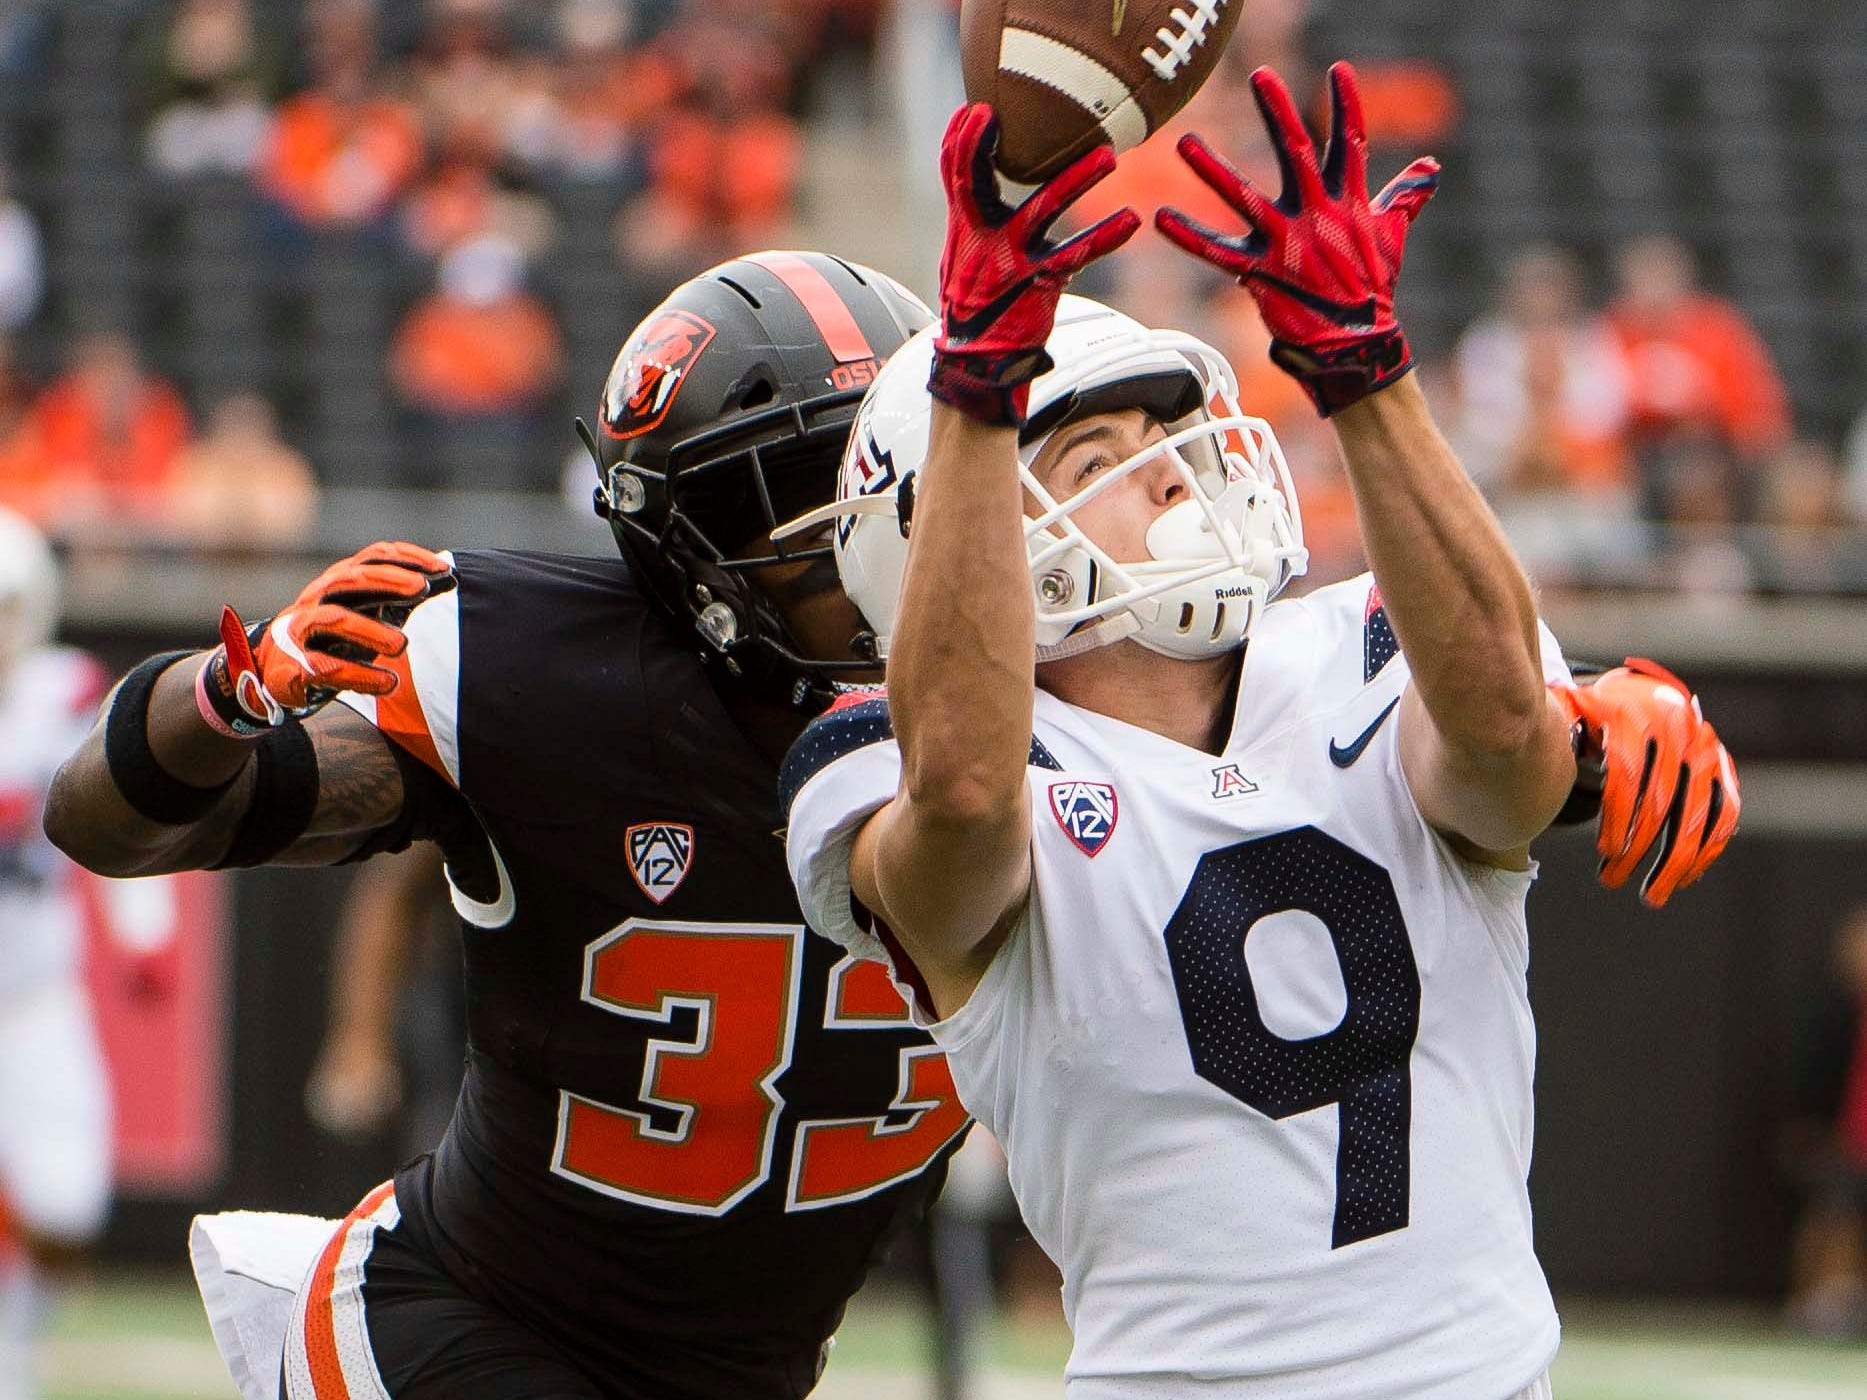 Sep 22, 2018; Corvallis, OR, USA; Oregon State Beavers safety Jalen Moore (33) break up a pass during the first half intended for Arizona Wildcats wide receiver Tony Ellison (9) at Reser Stadium. Mandatory Credit: Troy Wayrynen-USA TODAY Sports